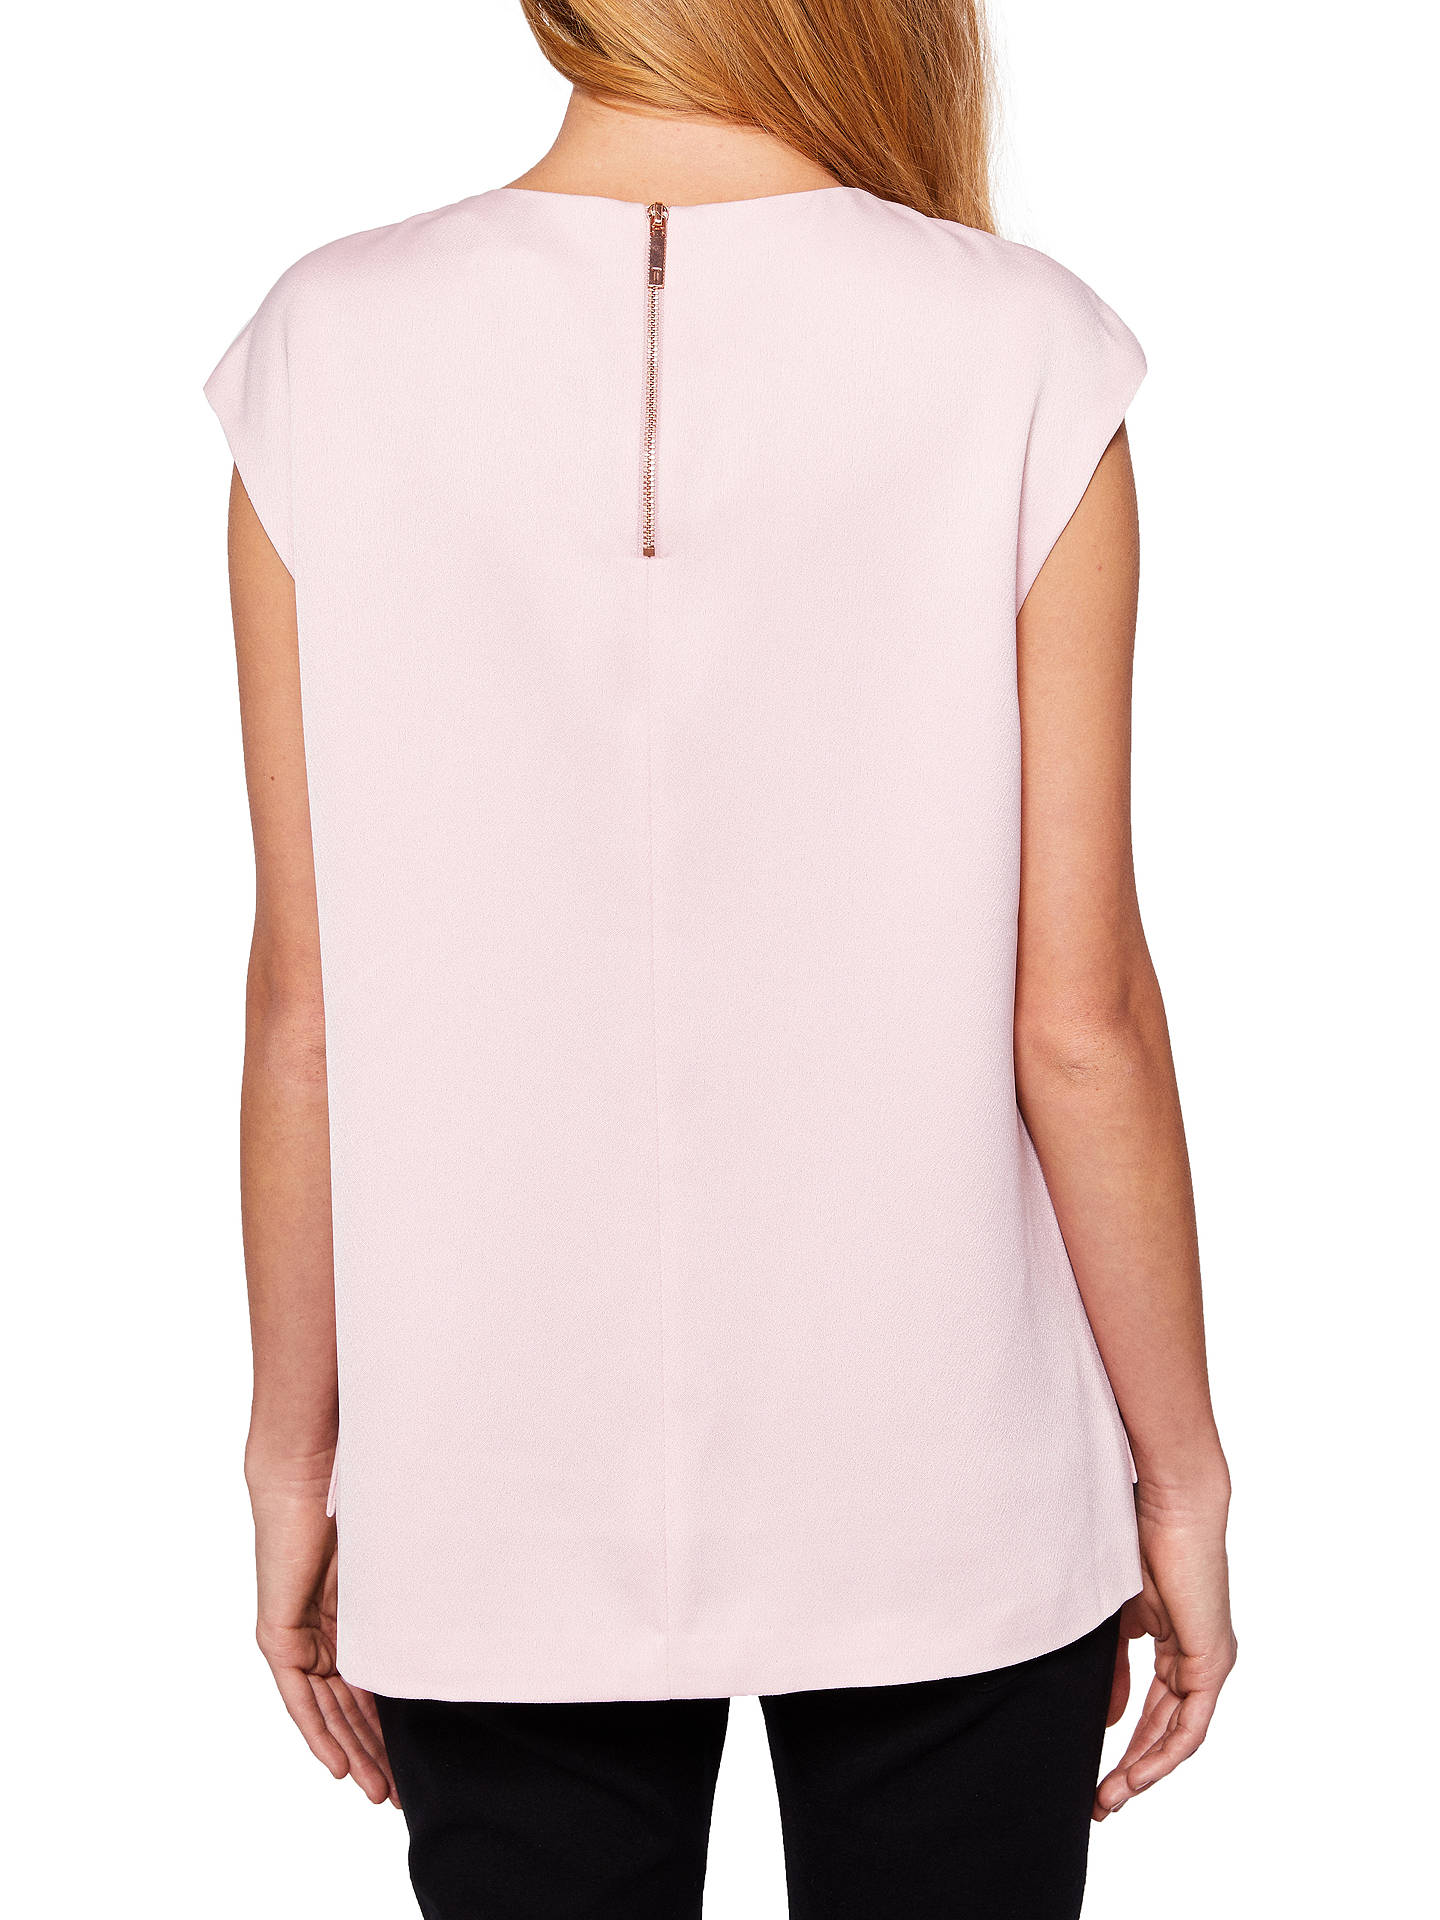 005e37151461b ... Buy Ted Baker Camble Pearl Embellished Sleeveless Top